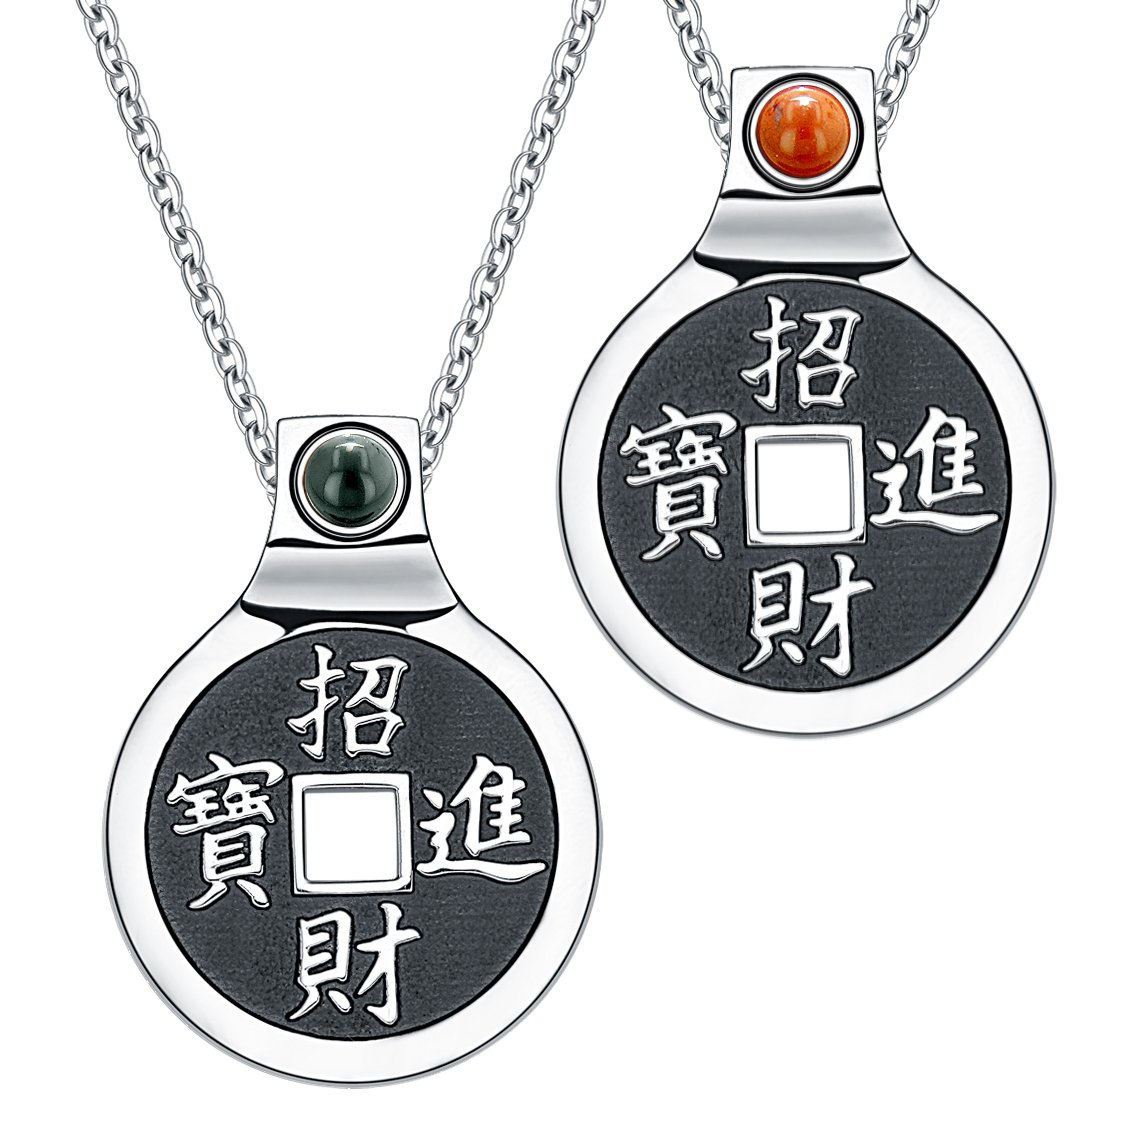 Yin Yang Amulets Love Couple Feng Shui Lucky Coins Kanji Magic Set Onyx Red Jasper Necklaces